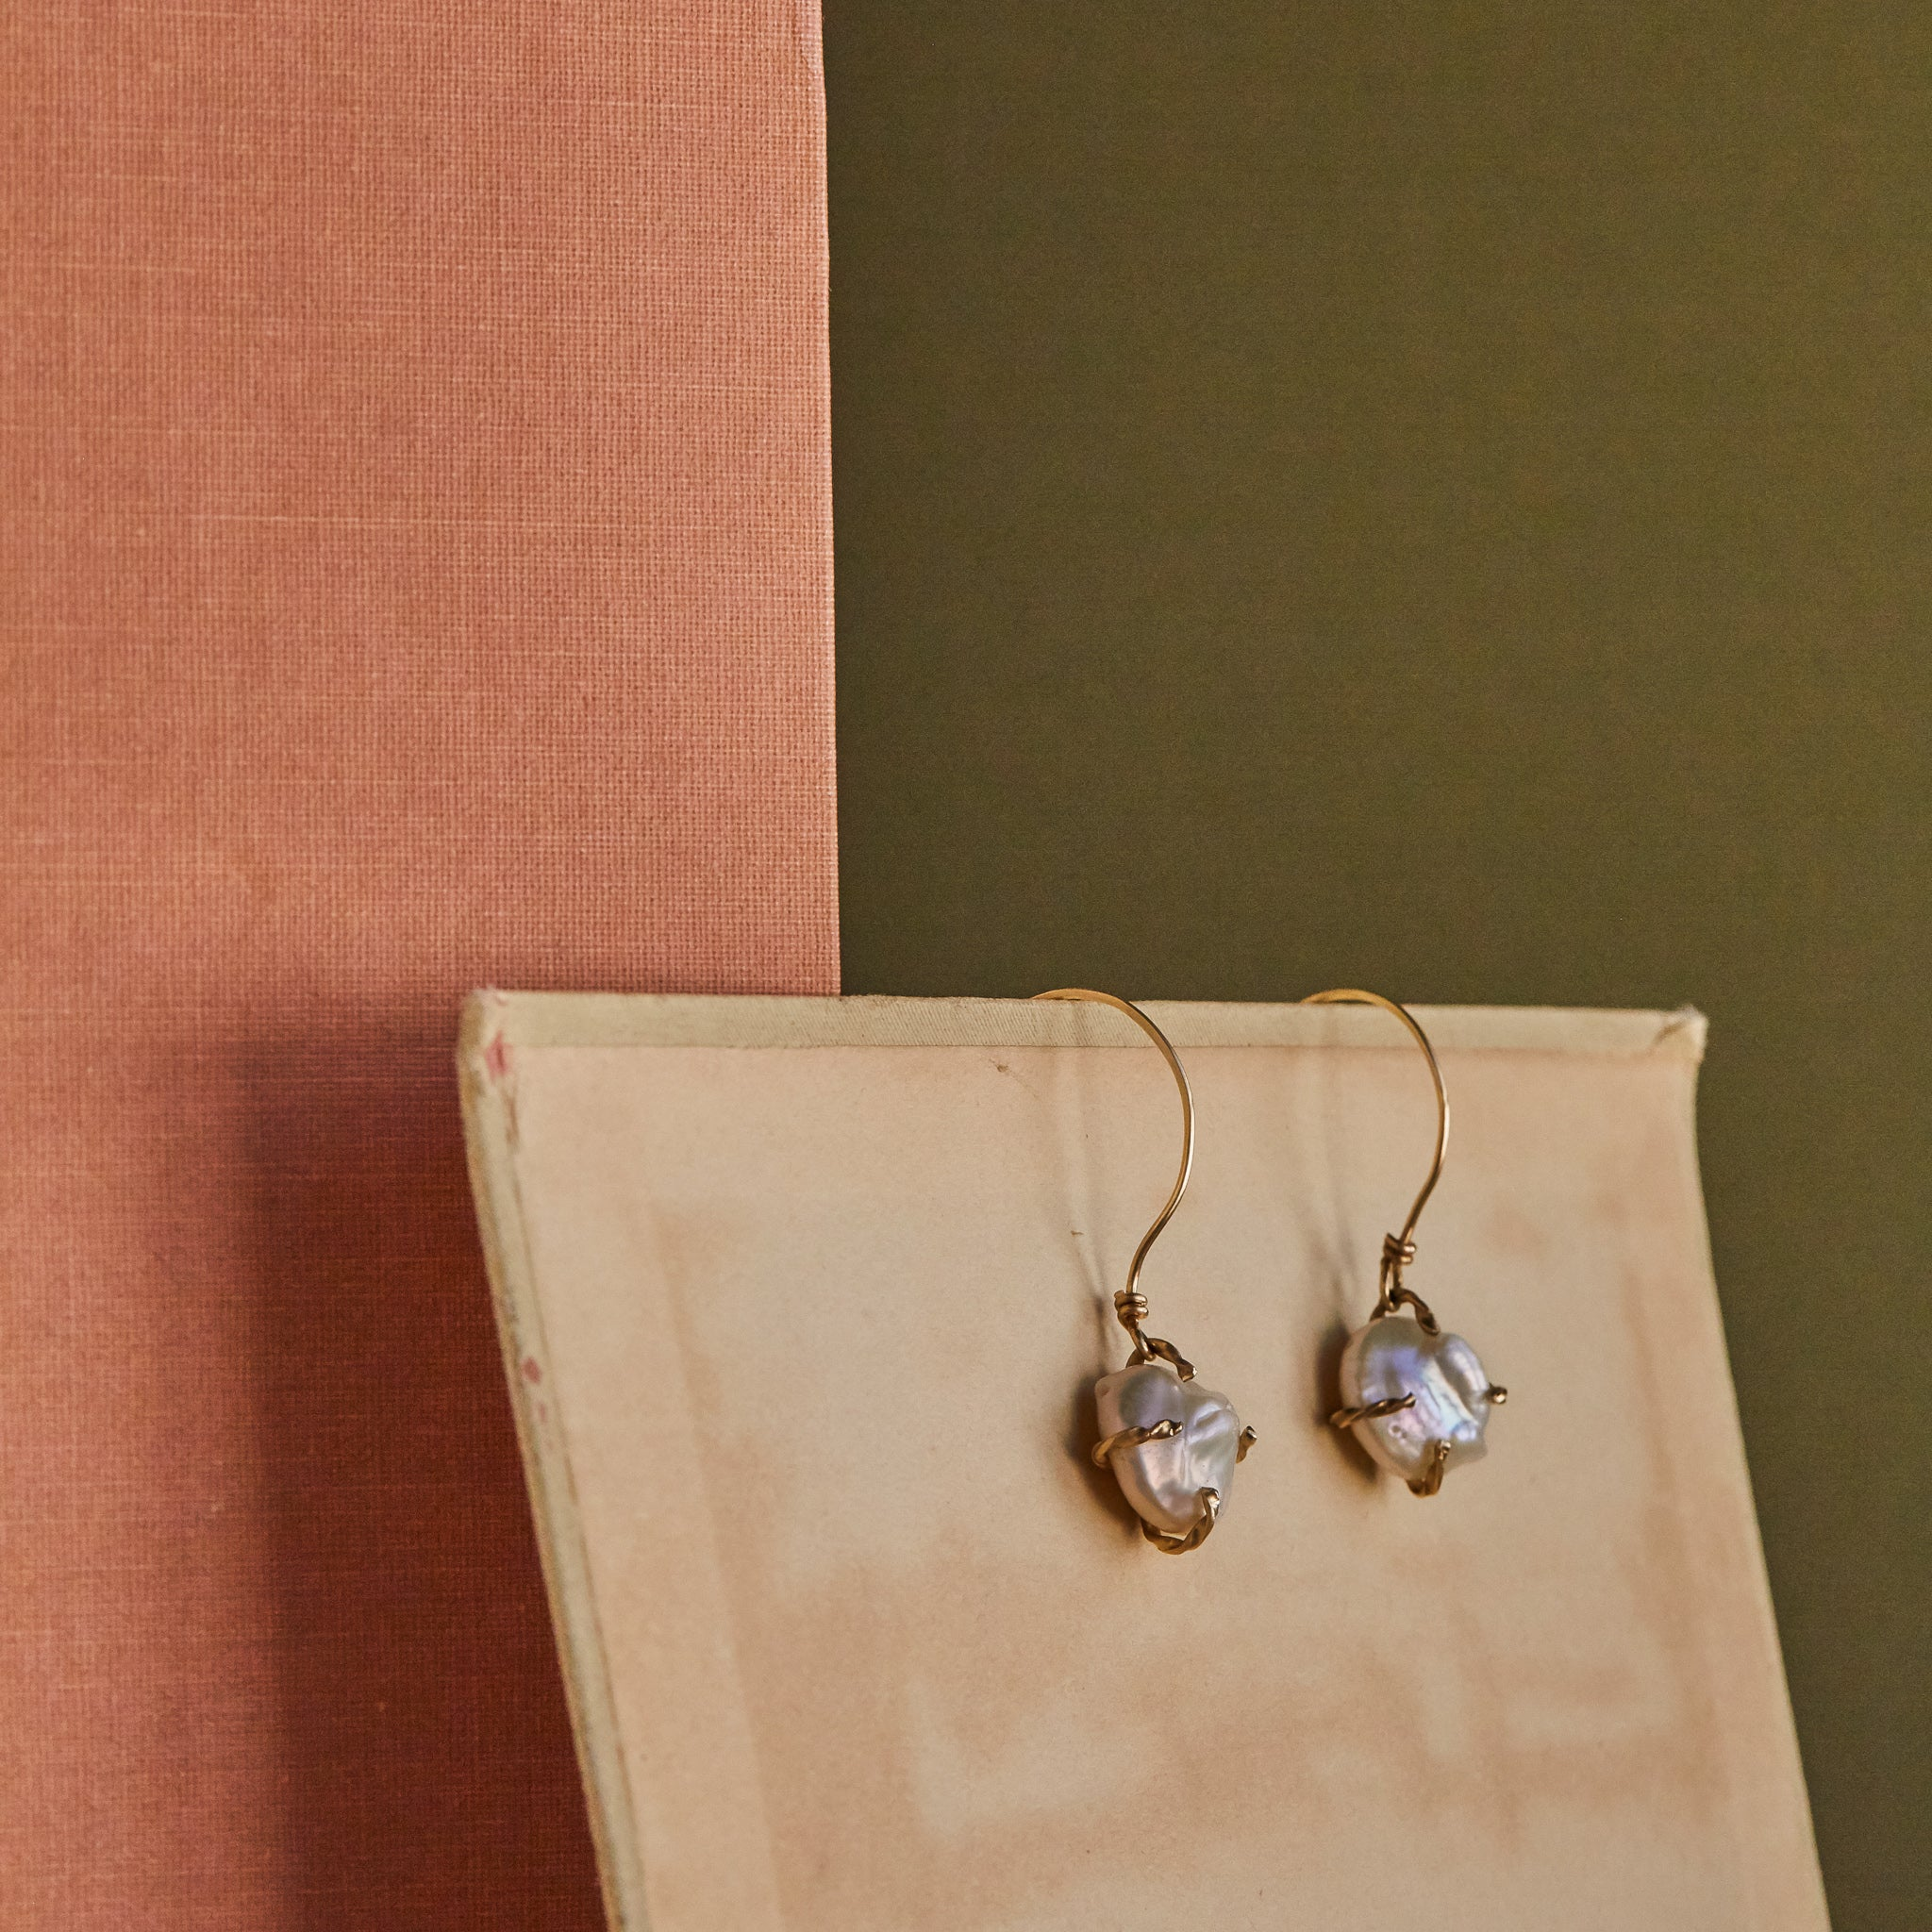 Vermeer Earrings